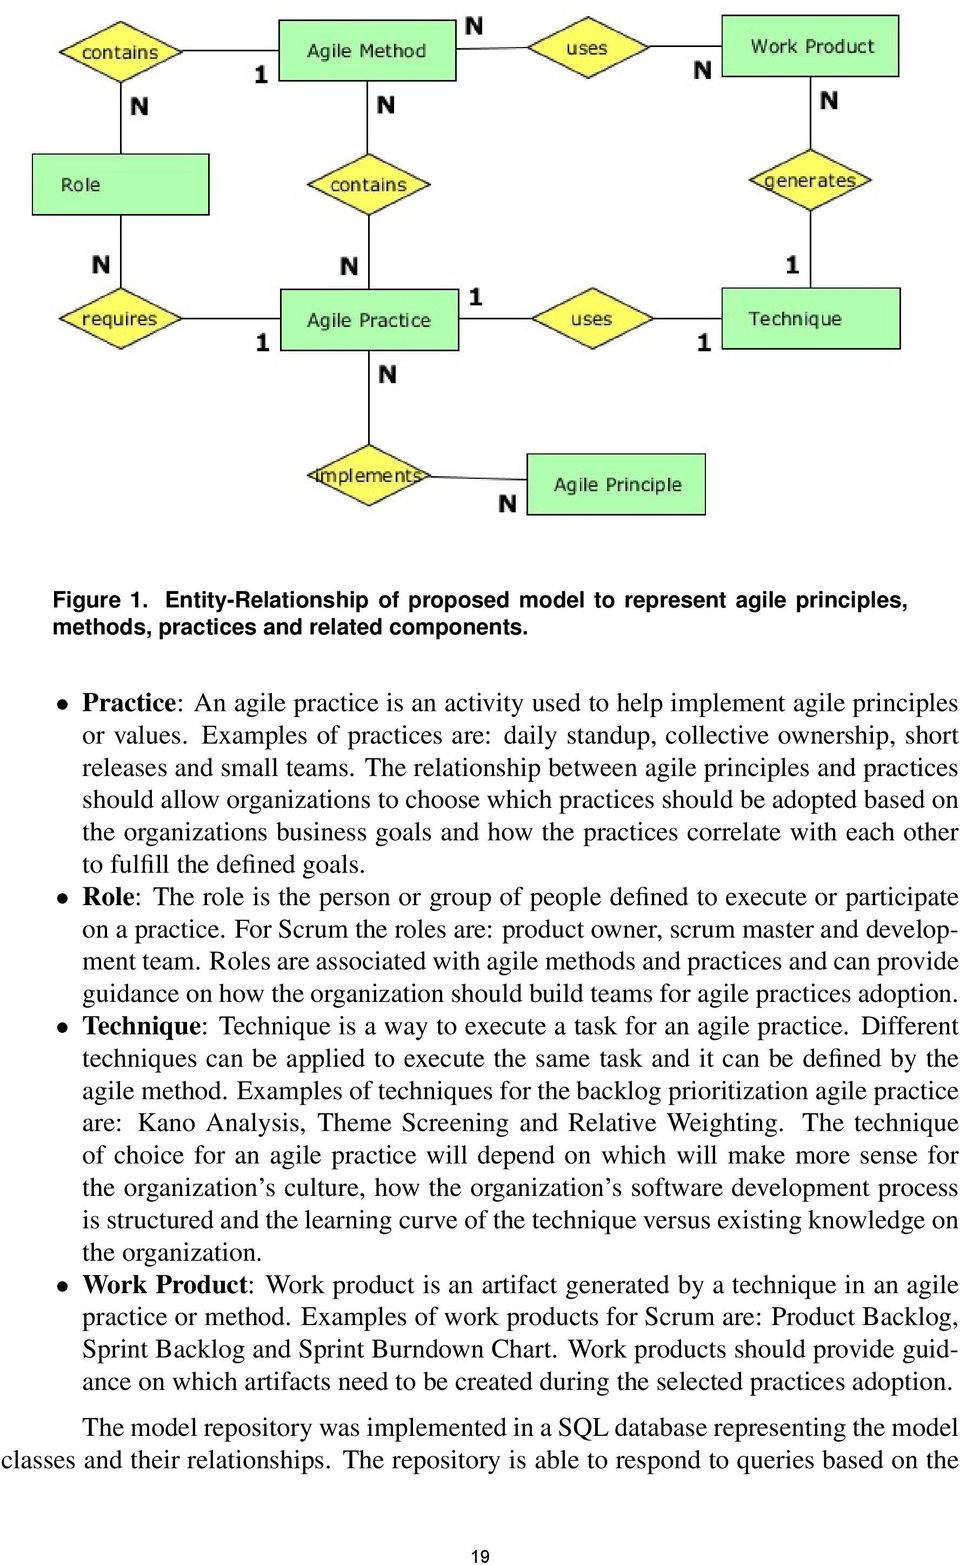 The relationship between agile principles and practices should allow organizations to choose which practices should be adopted based on the organizations business goals and how the practices